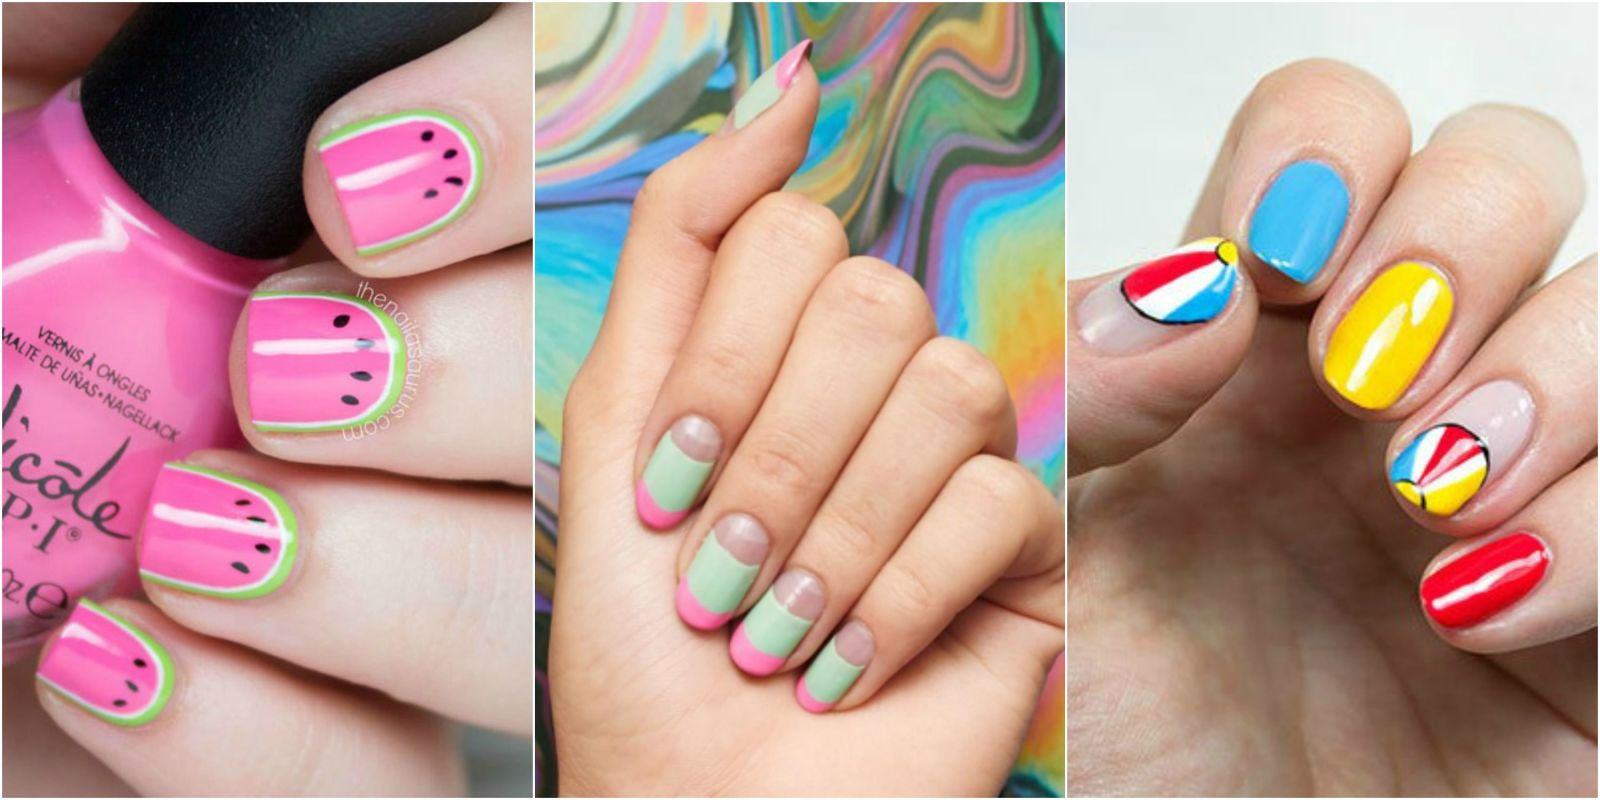 Nail Design Ideas 20 awesome summer nail designs complimenting the season with hues of brightness 30 Summer Nail Designs For 2017 Best Nail Polish Art Ideas For Summer